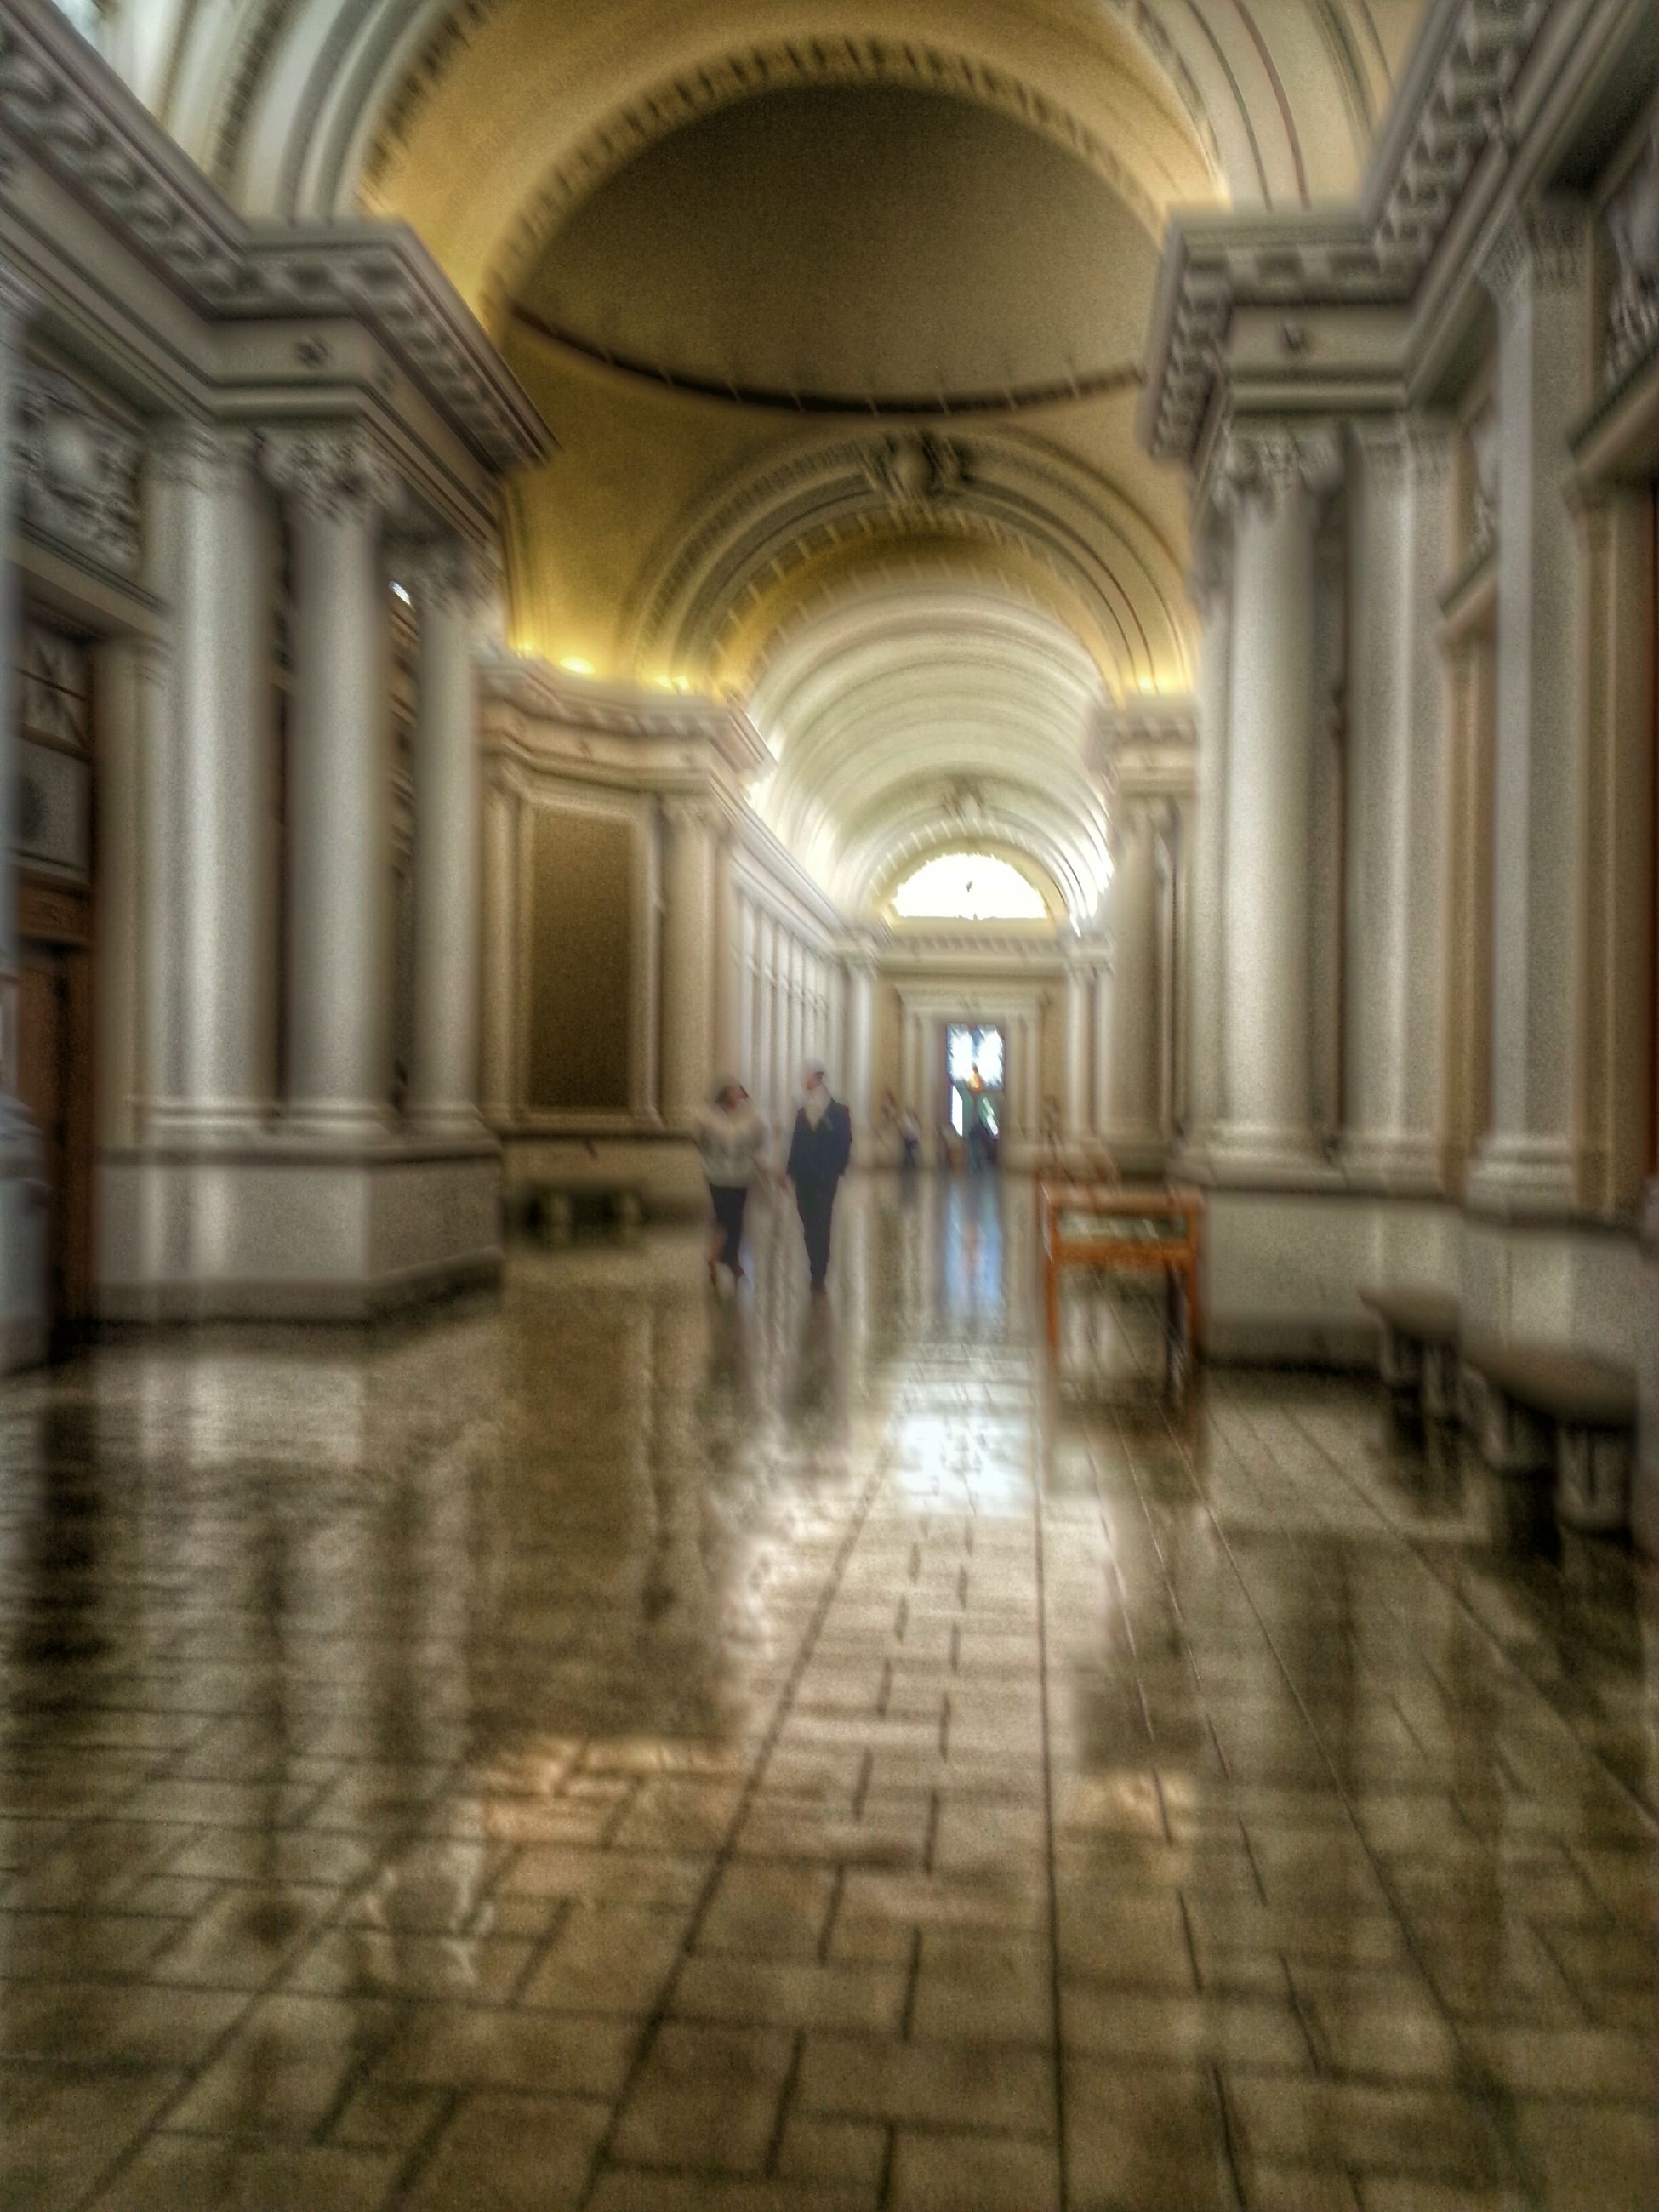 indoors, arch, corridor, architecture, flooring, ceiling, built structure, architectural column, tiled floor, interior, religion, the way forward, place of worship, church, spirituality, person, diminishing perspective, men